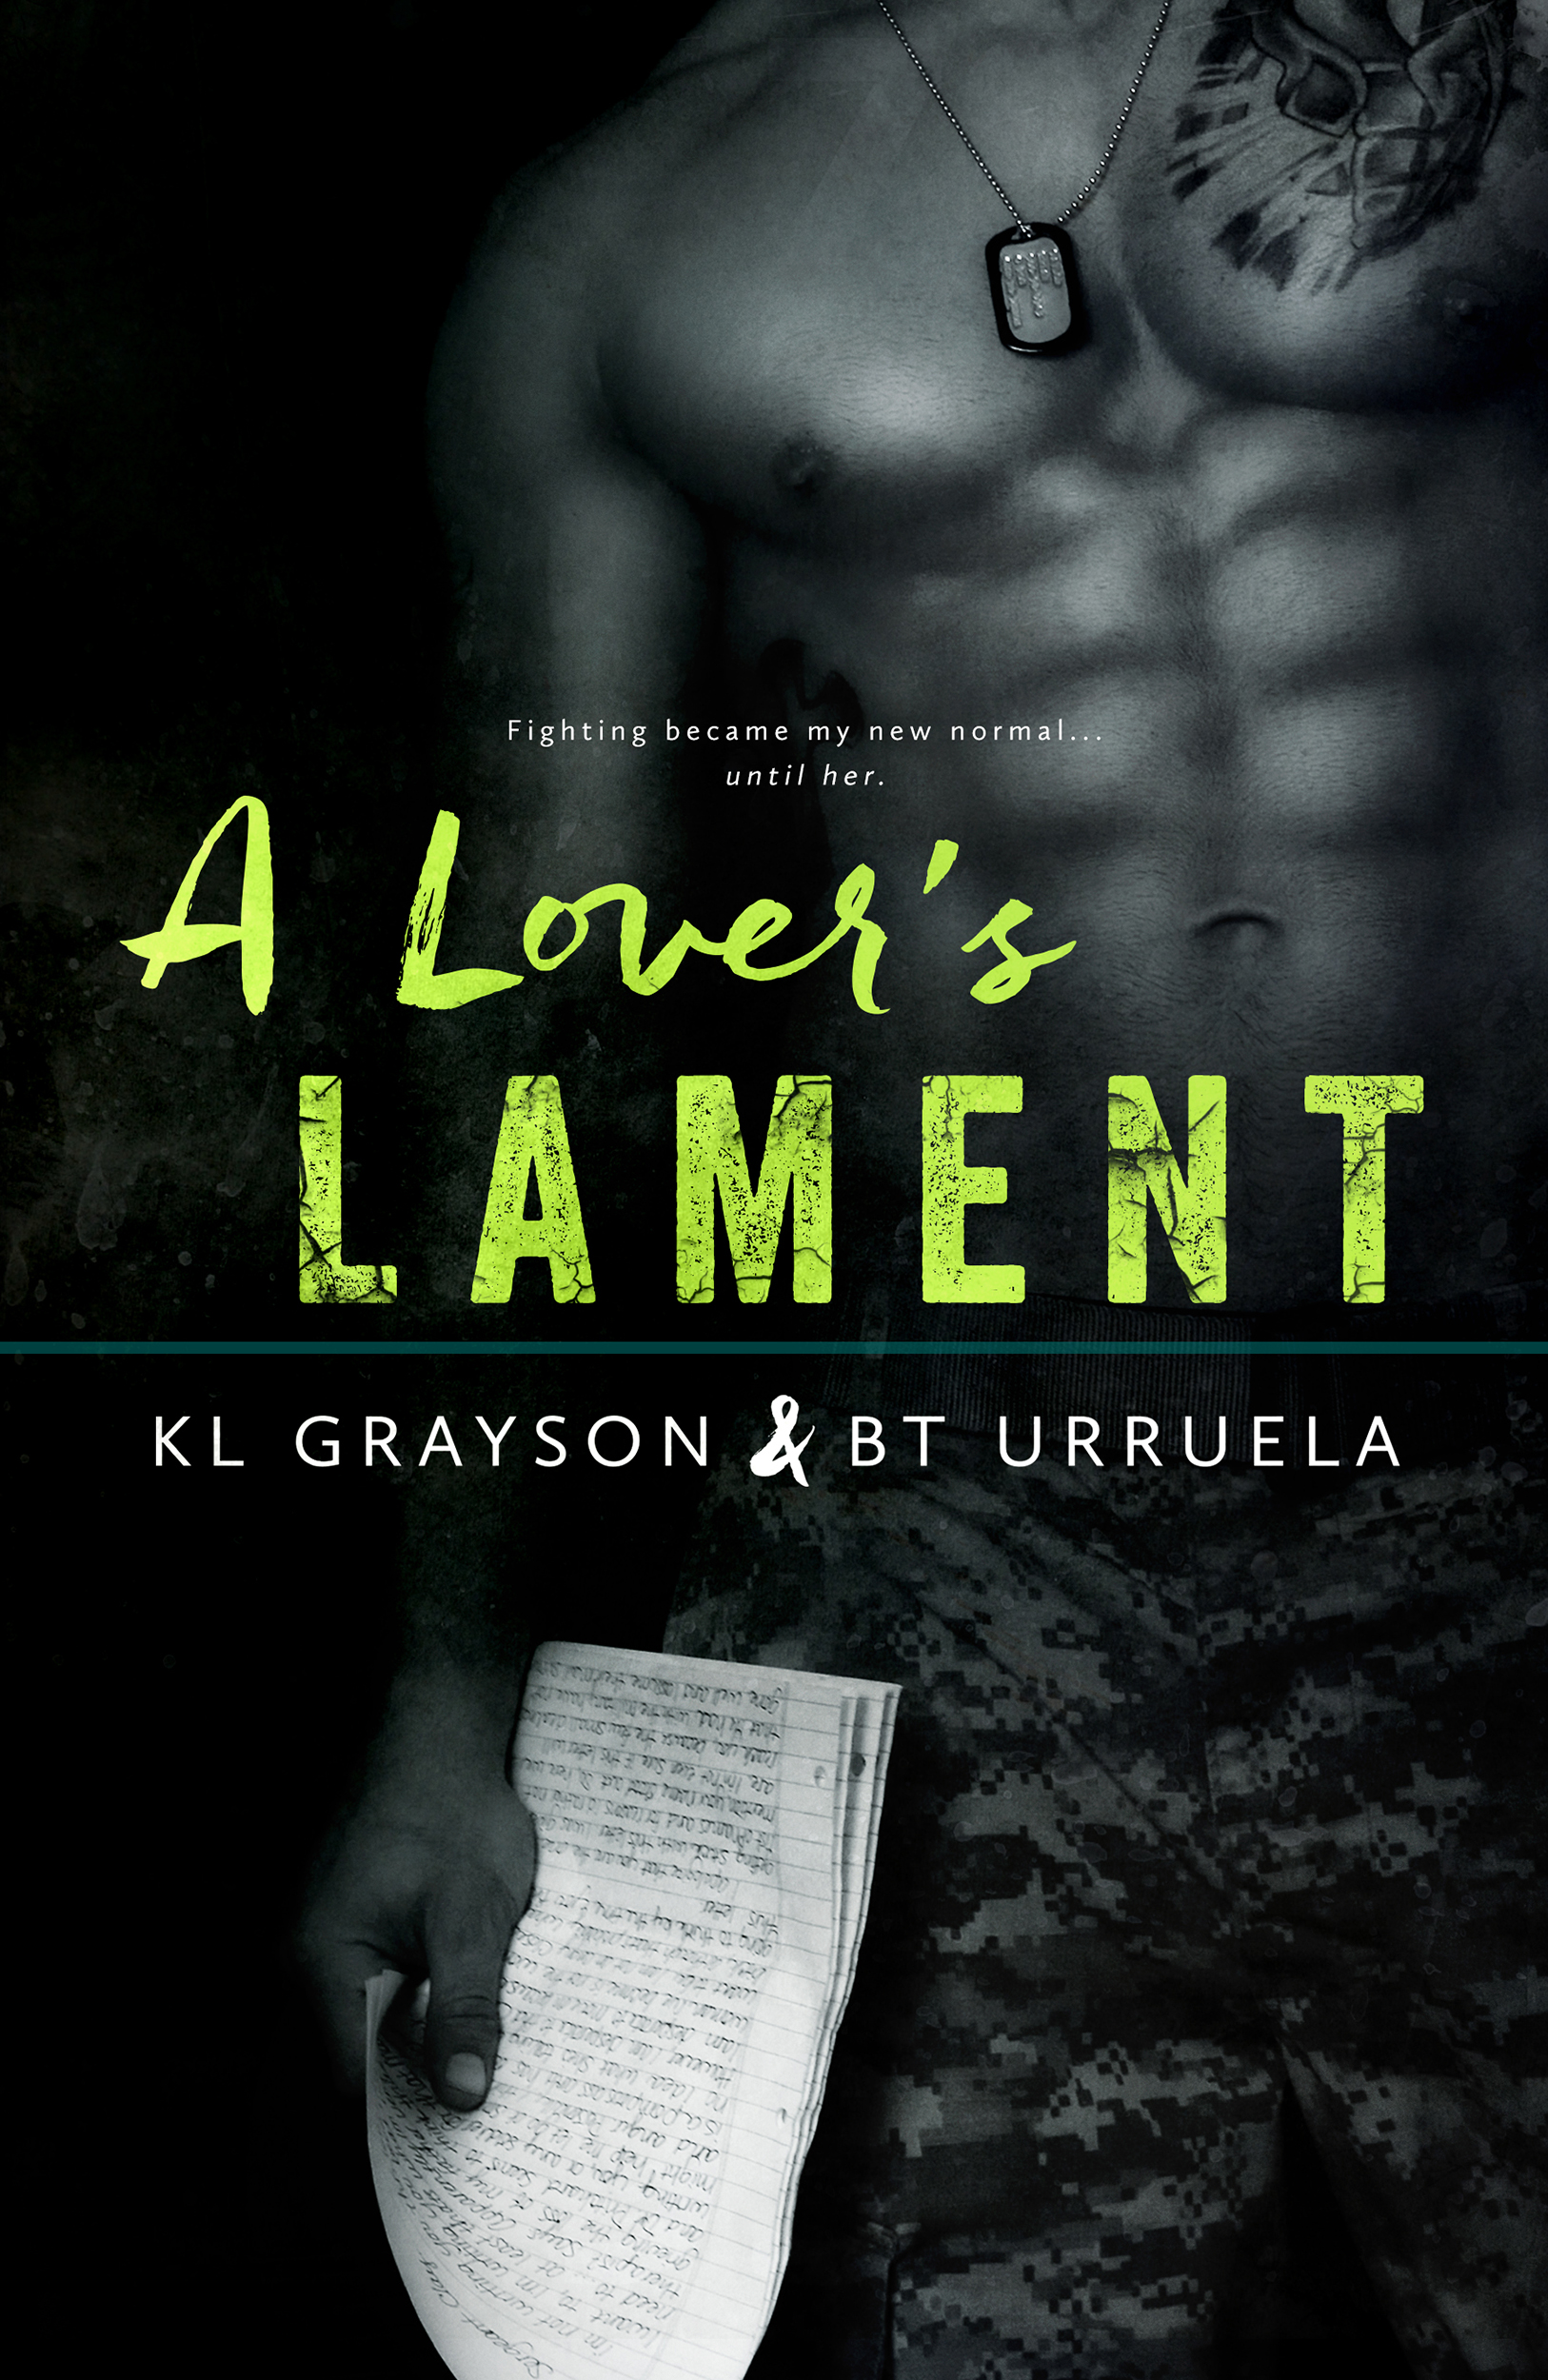 A Lover's Lament by KL Grayson & BT Urruela